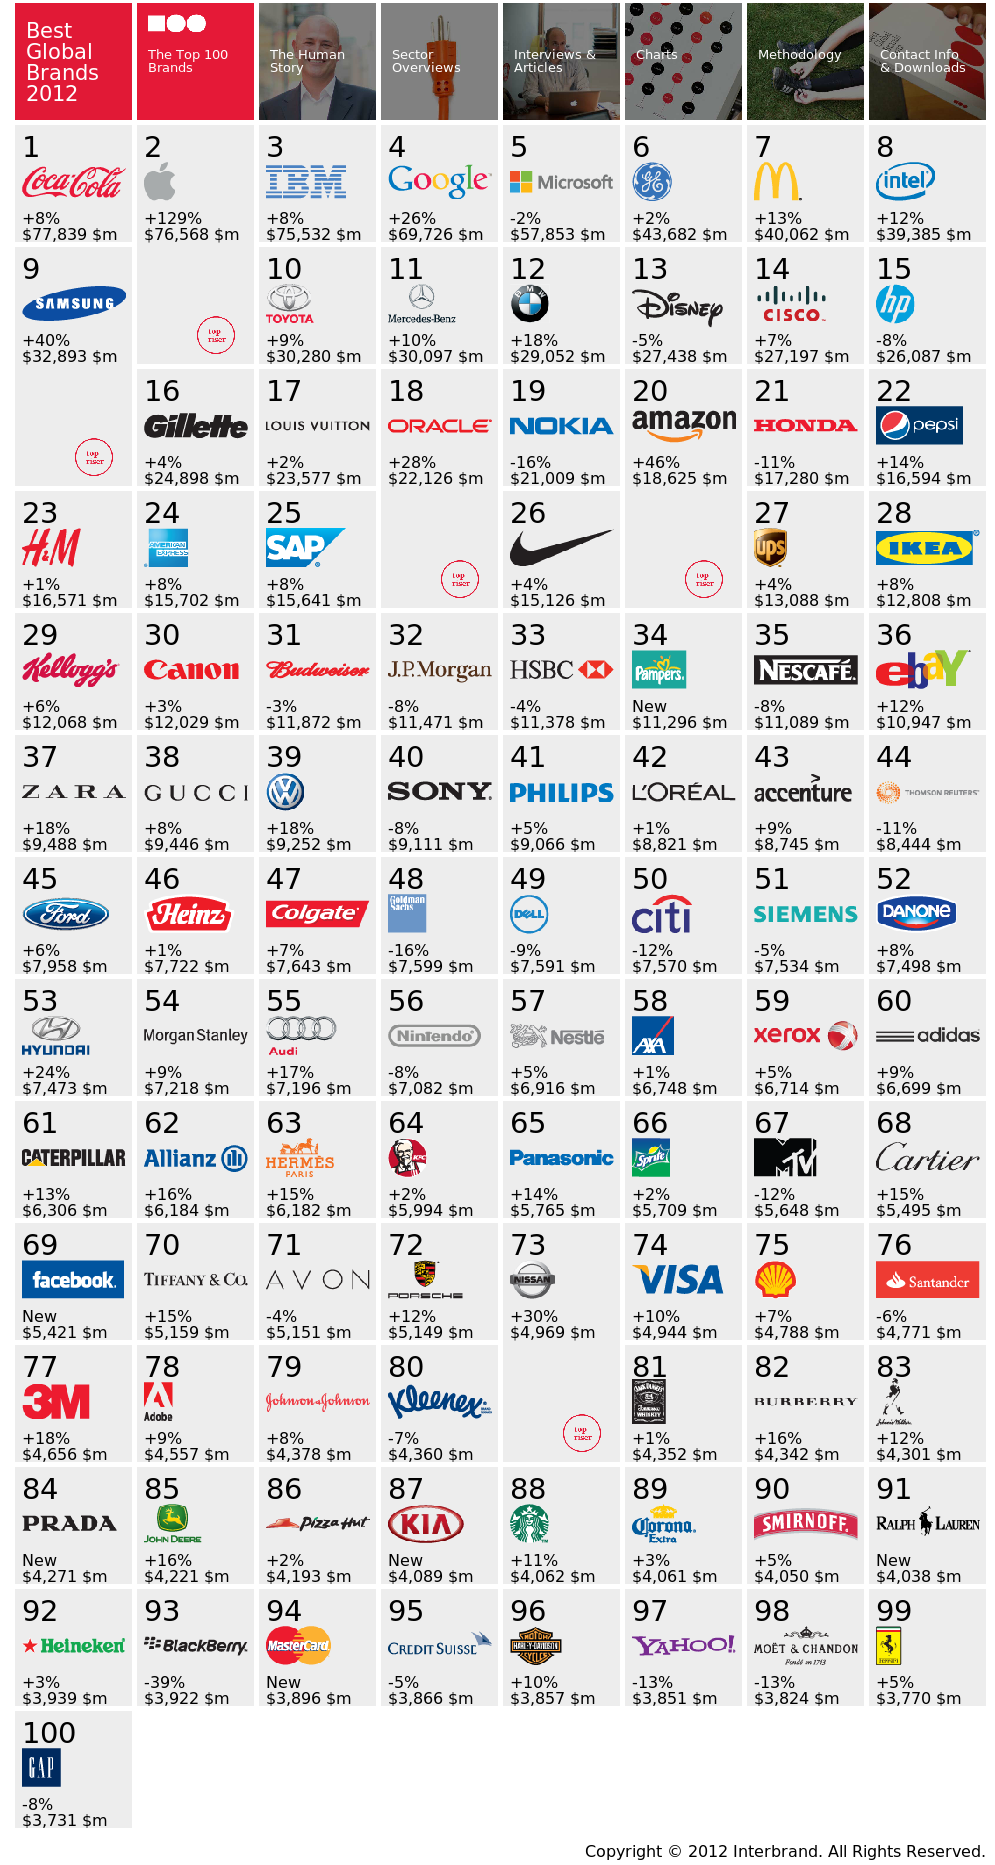 Interbrand - Best Global Brands 2012 - 2012 Report (Brand View)